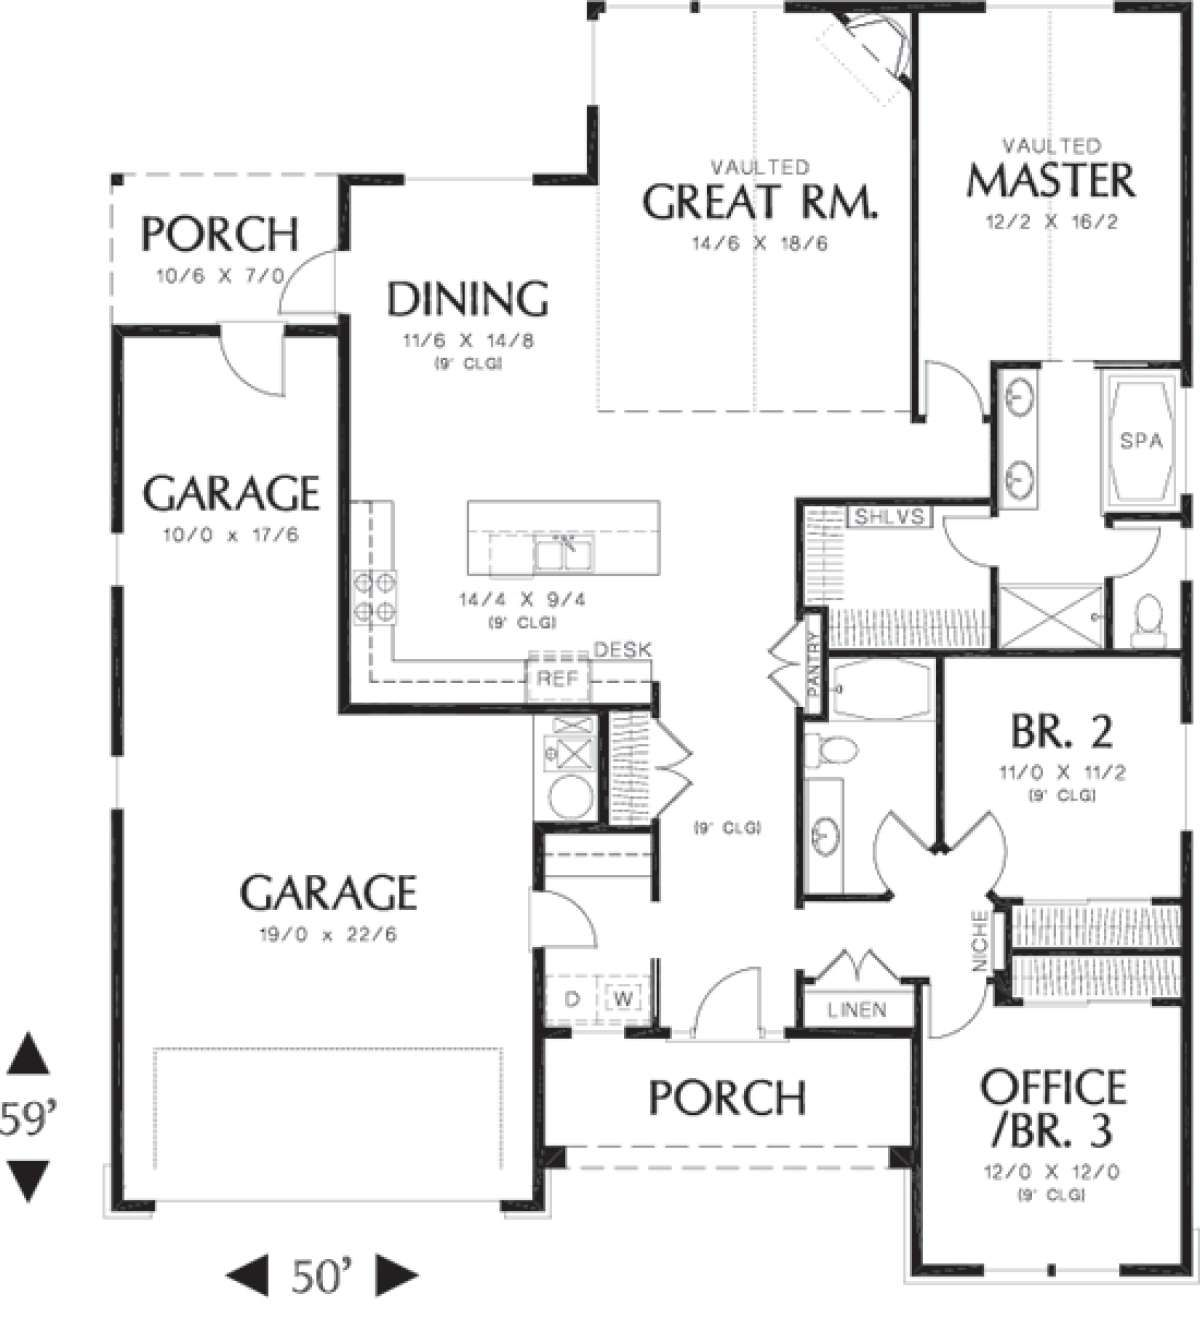 House Plan 2559 00092 Country Plan 1 797 Square Feet 3 Bedrooms 2 Bathrooms In 2021 House Plans One Story Craftsman House Plans House Plans And More